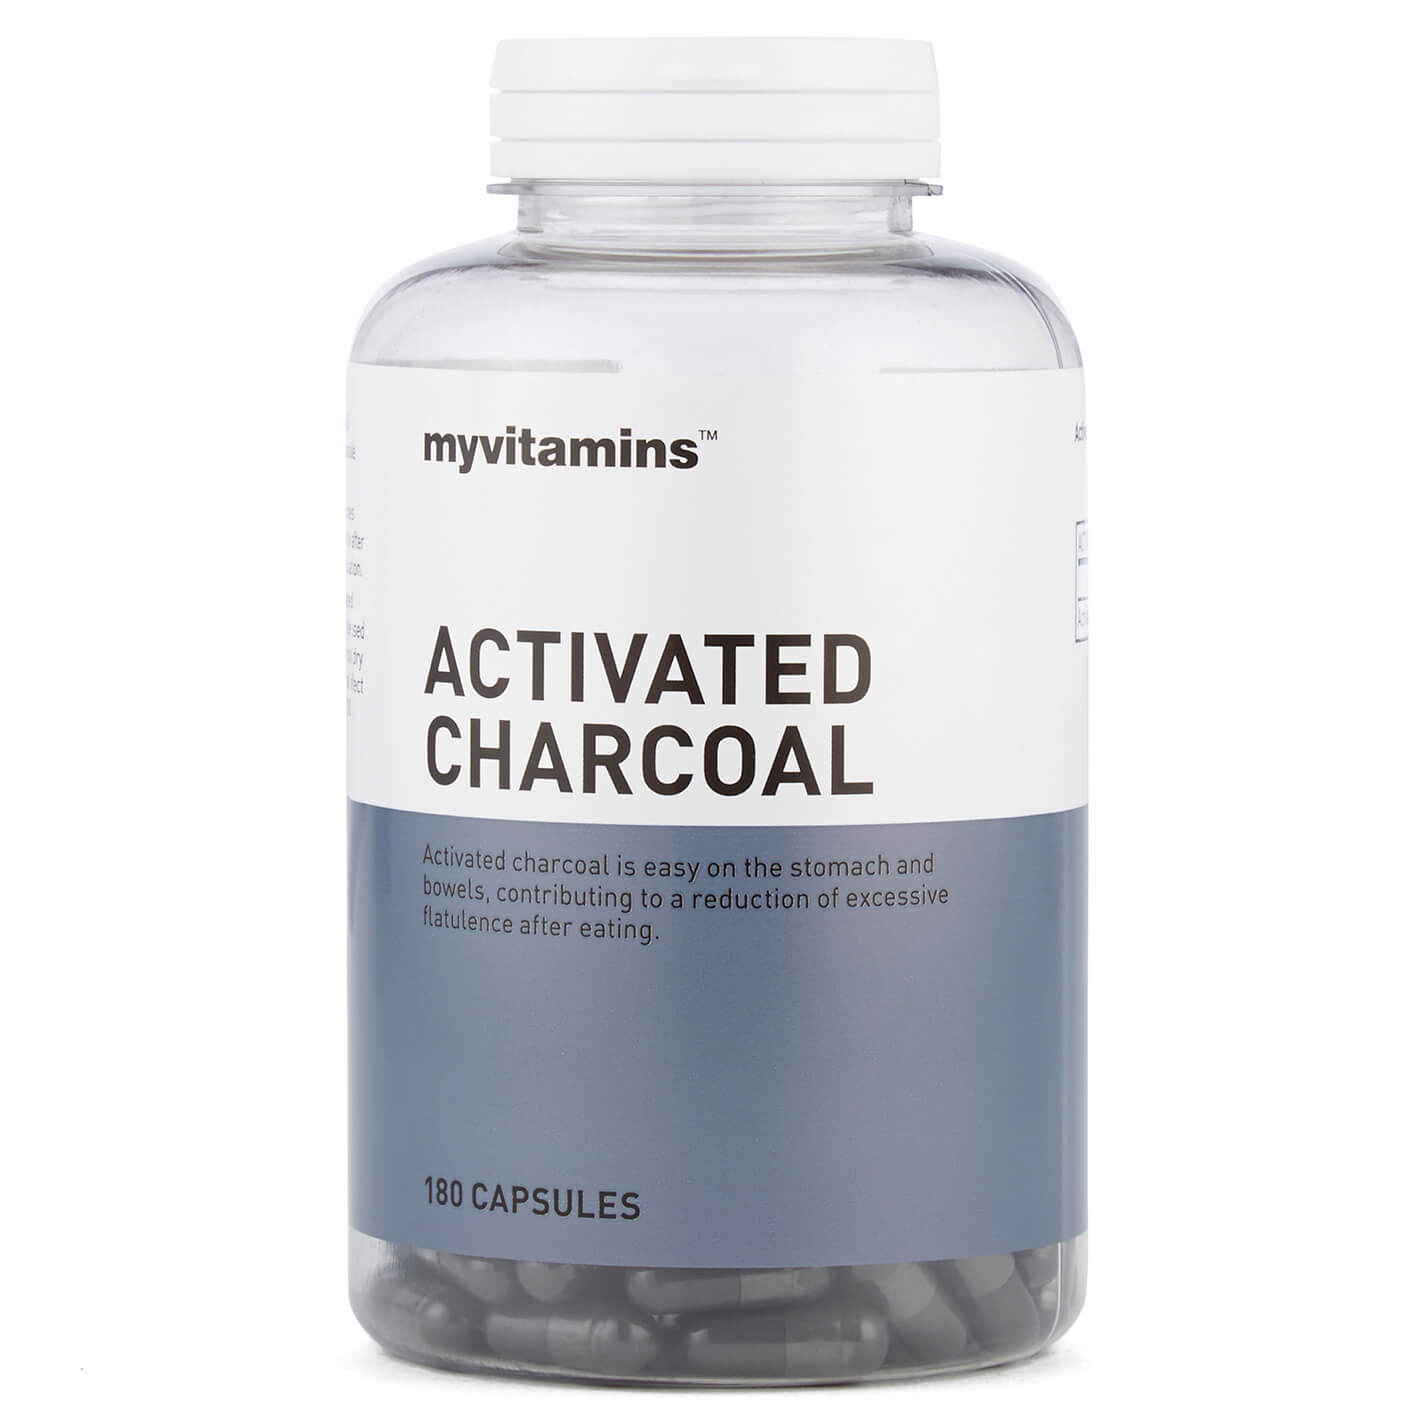 Myvitamins Activated Charcoal, 180 Tablets